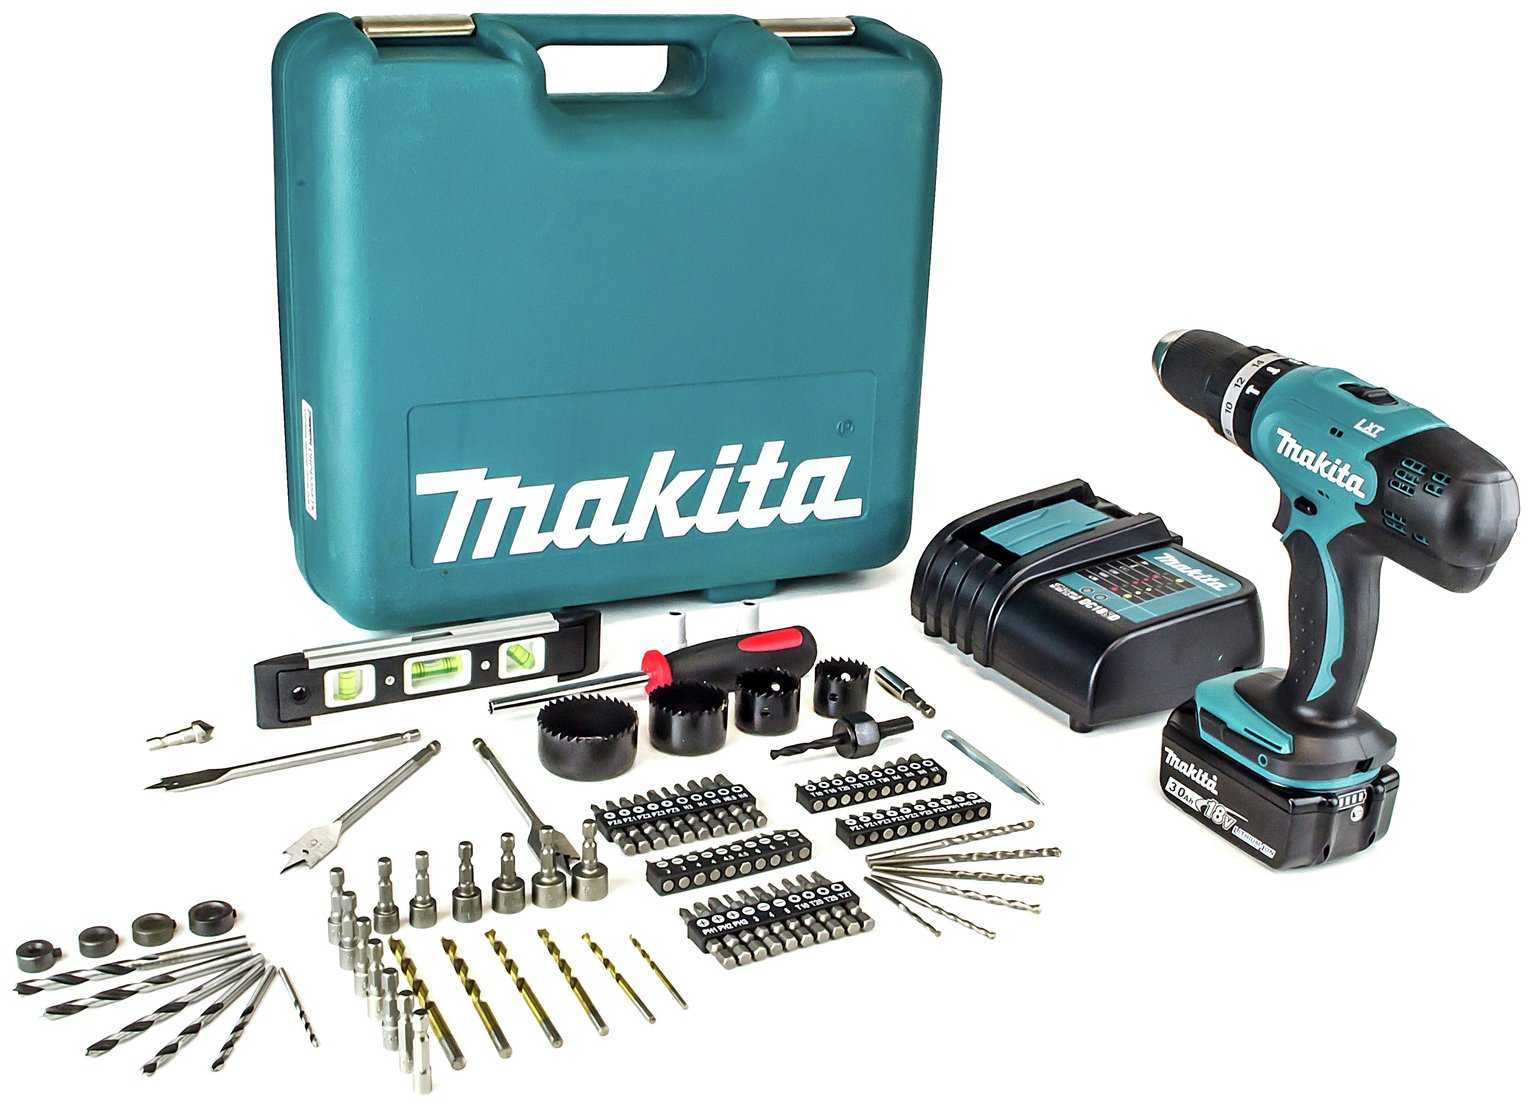 Image of Makita LXT 18V 3Ah Cordless Combi Drill with 101 Accessories